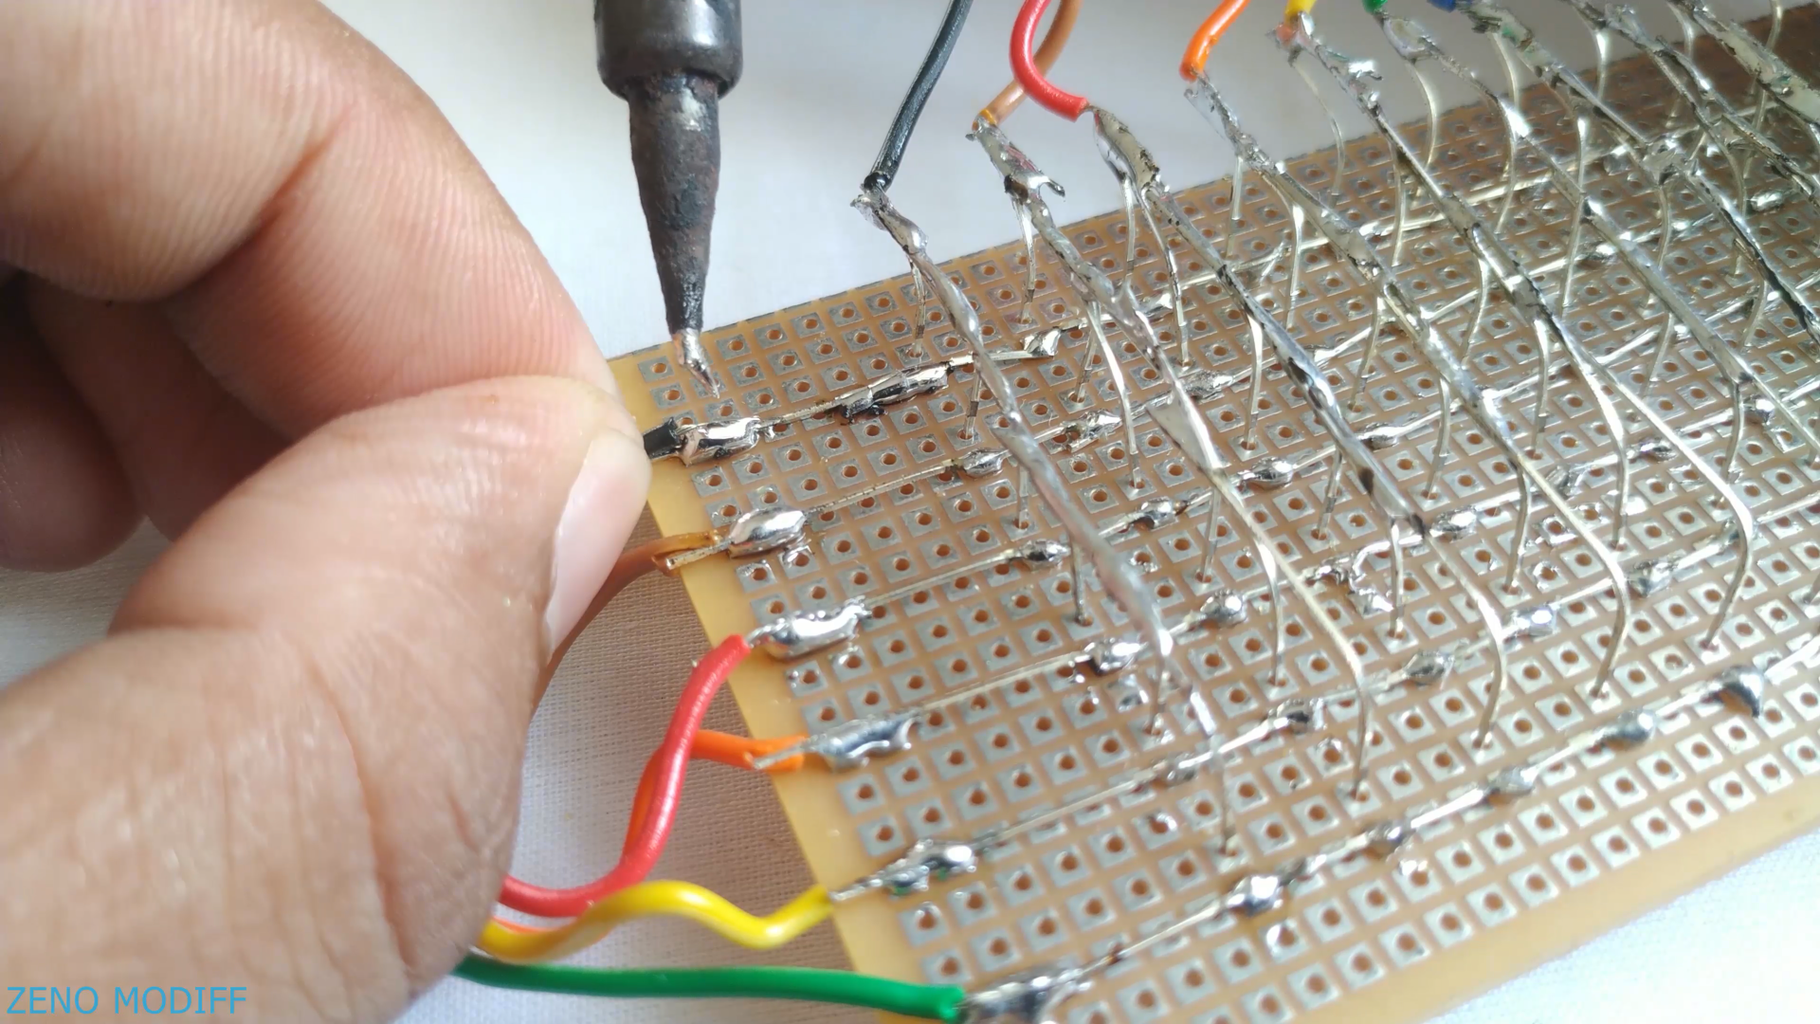 Attaching Wires to the Matrix ..